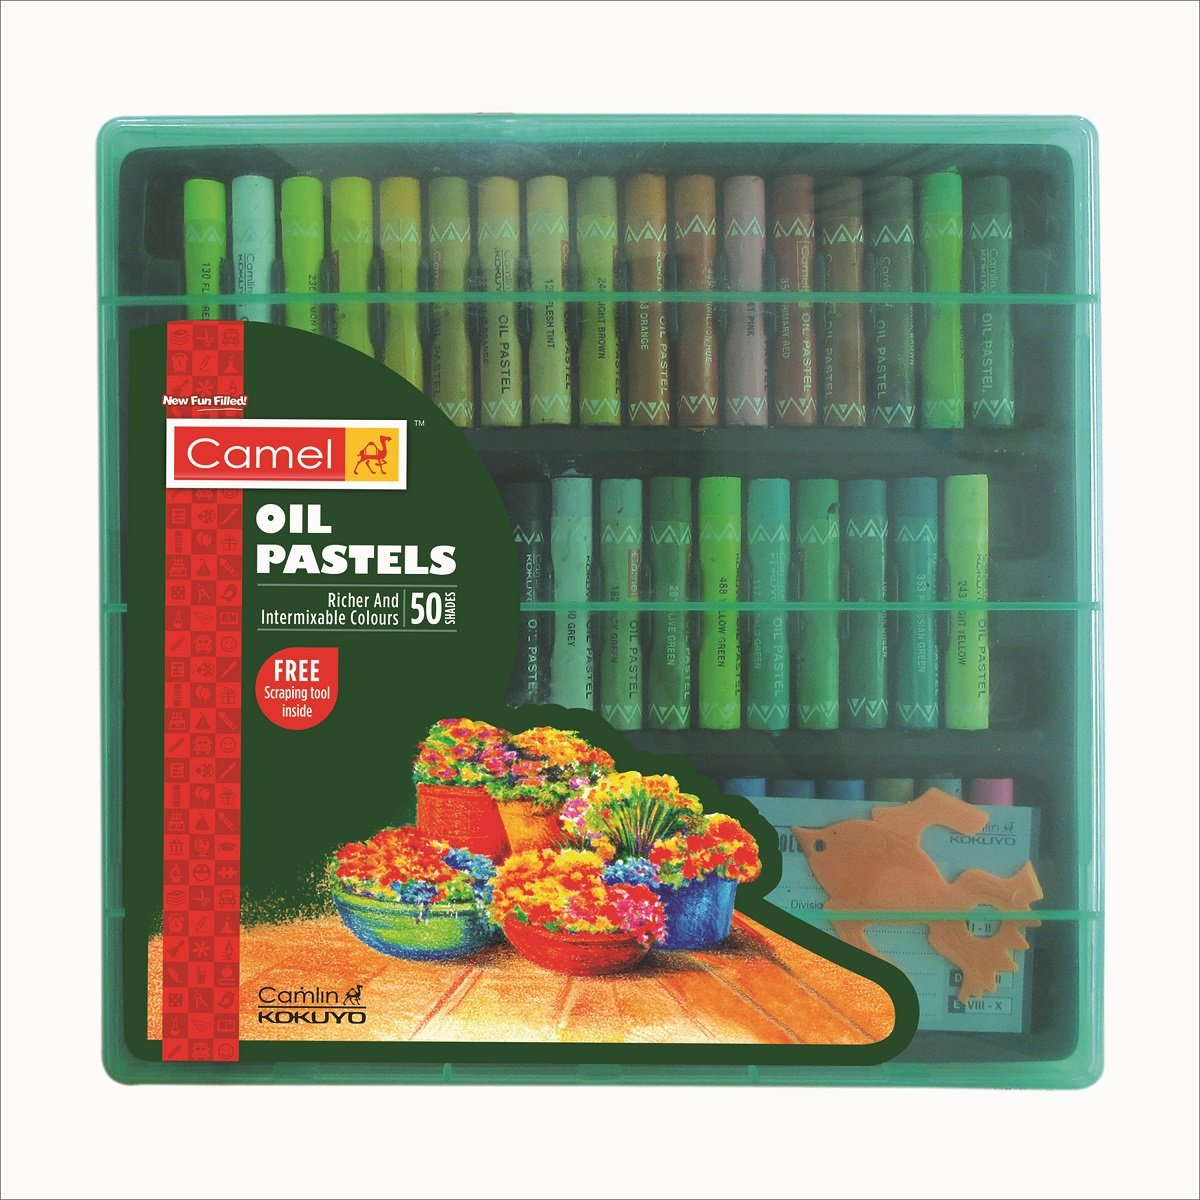 Camel Oil Pastel with Reusable Plastic Box – 50 Shades